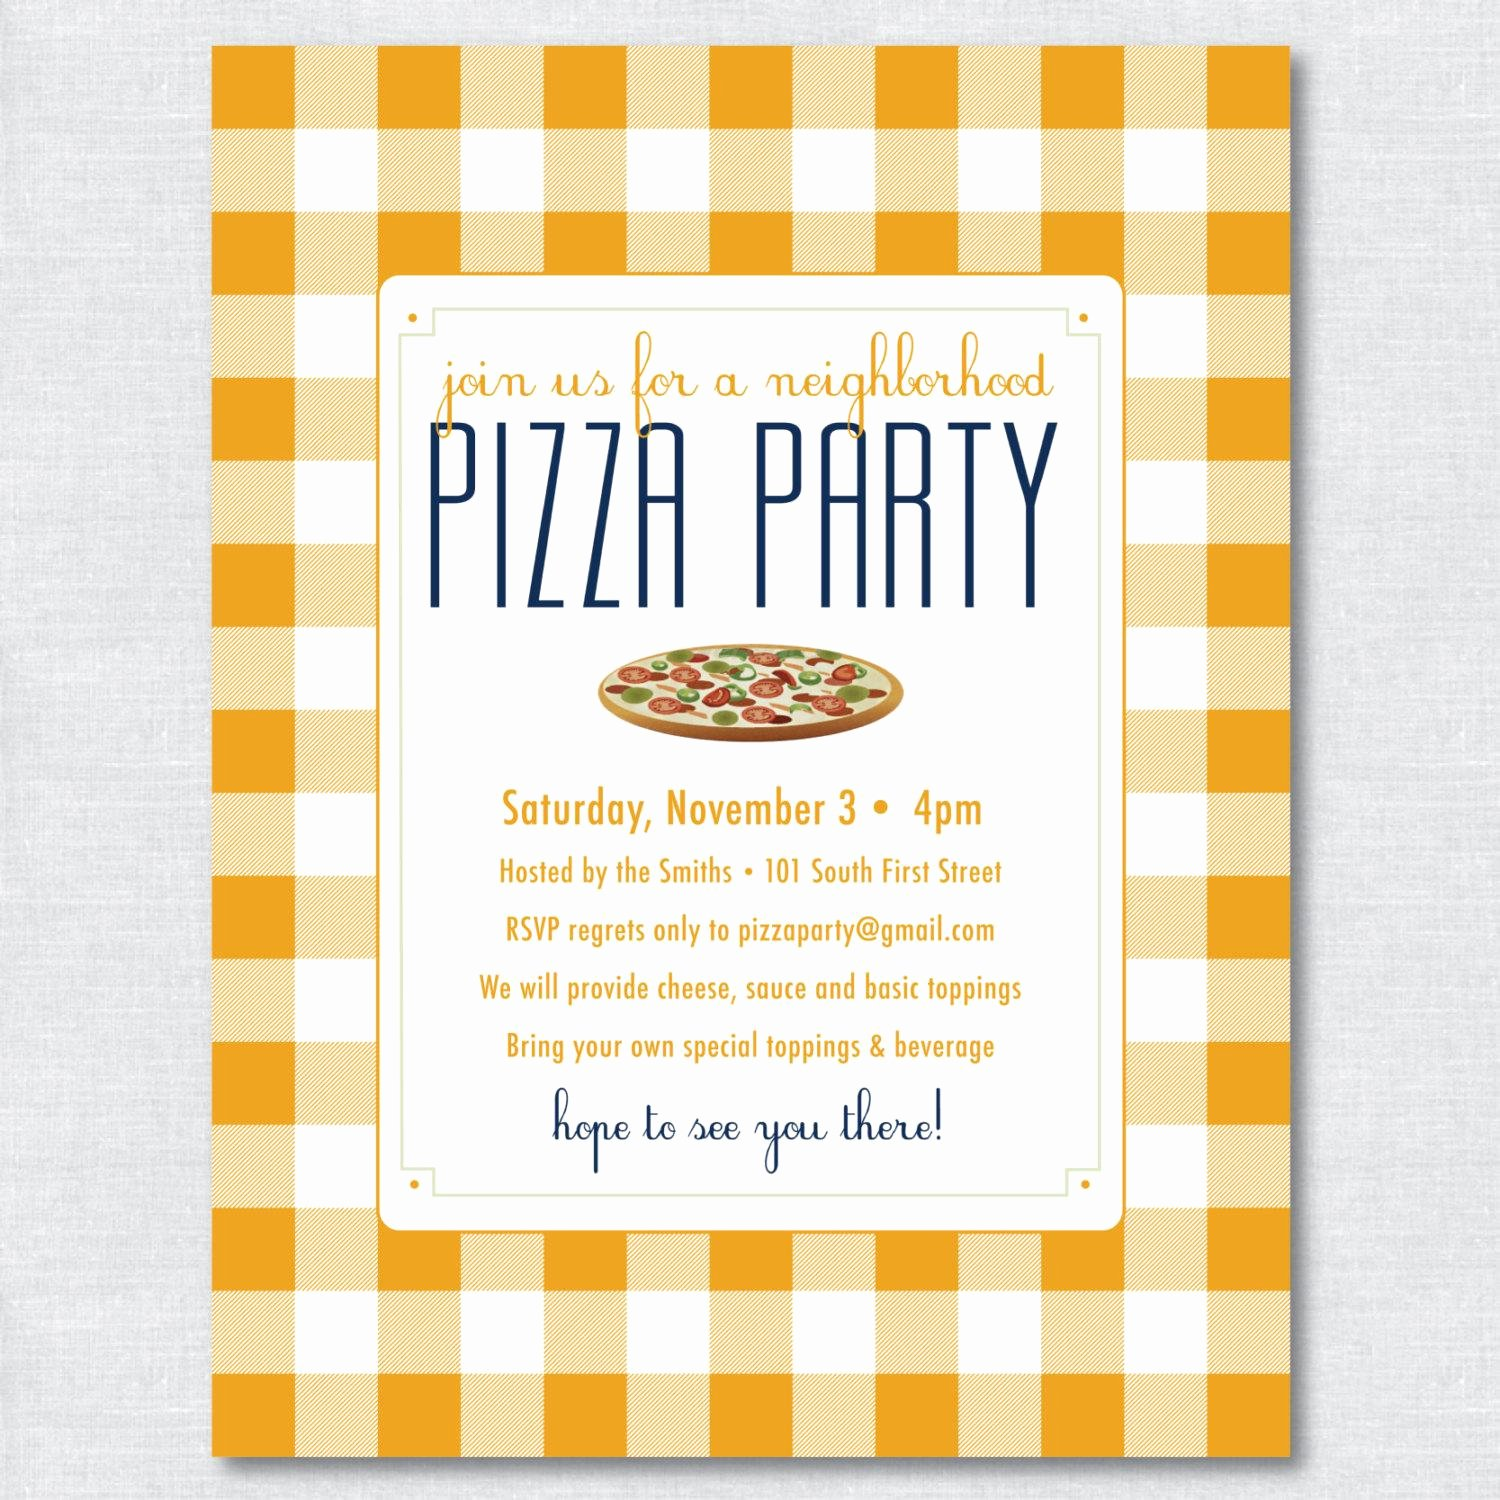 Pizza Party Invitation Template Lovely Pizza Party Invitations